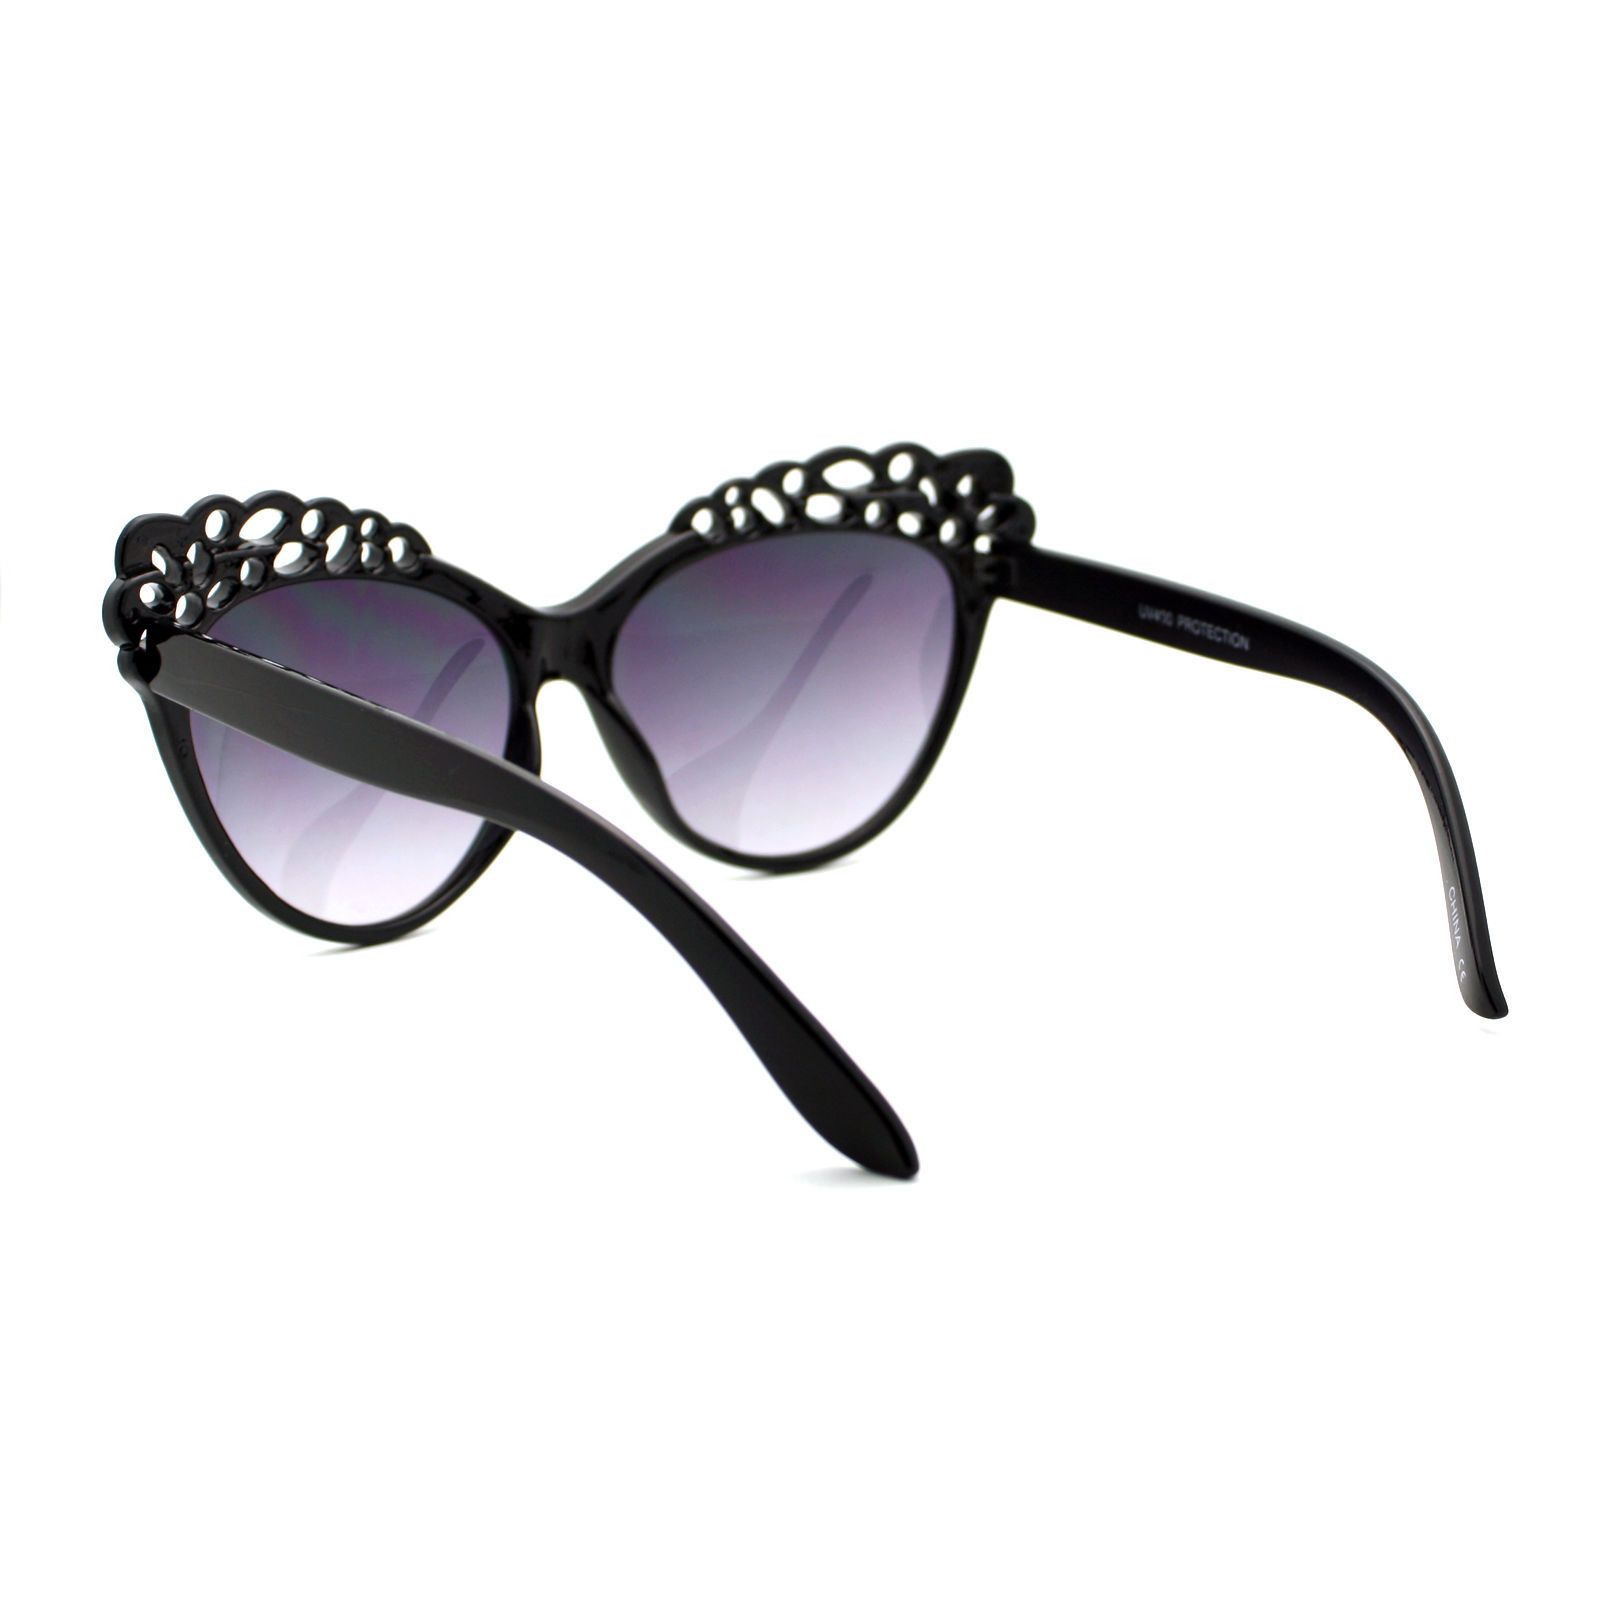 Womens Oversized Cateye Sunglasses Cute Floral Cutout Fashion Top